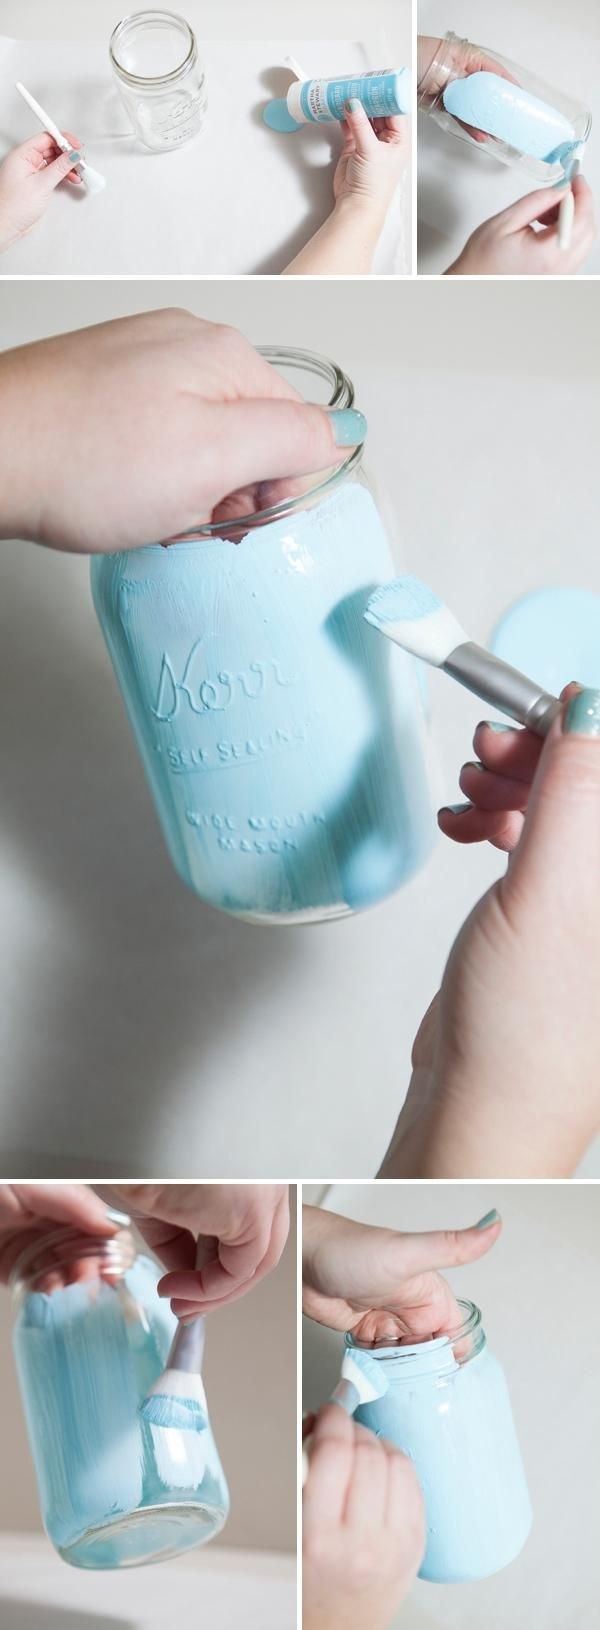 Learn step by step how to paint mason jars